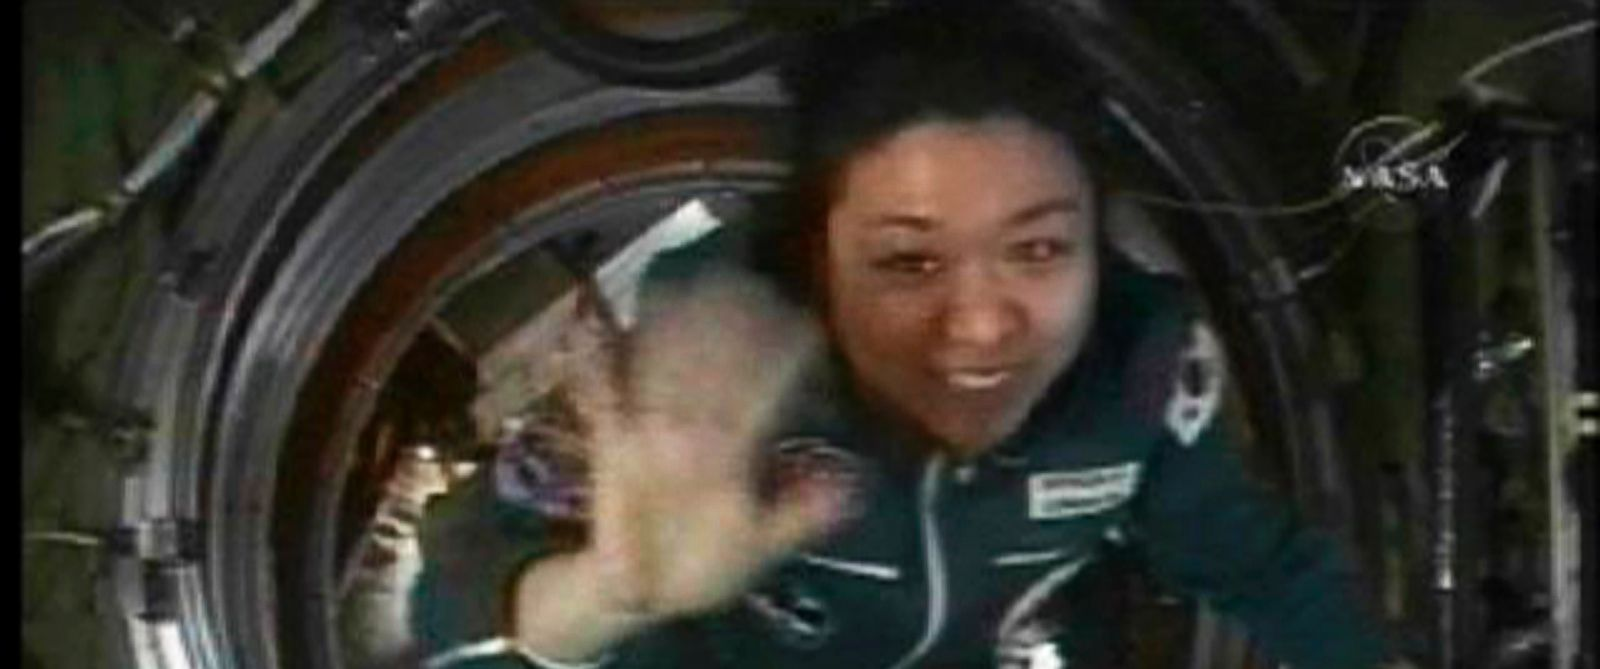 PHOTO: Spaceflight participant So-yeon Yi of Korea enters the International Space Station, April 10, 2008.